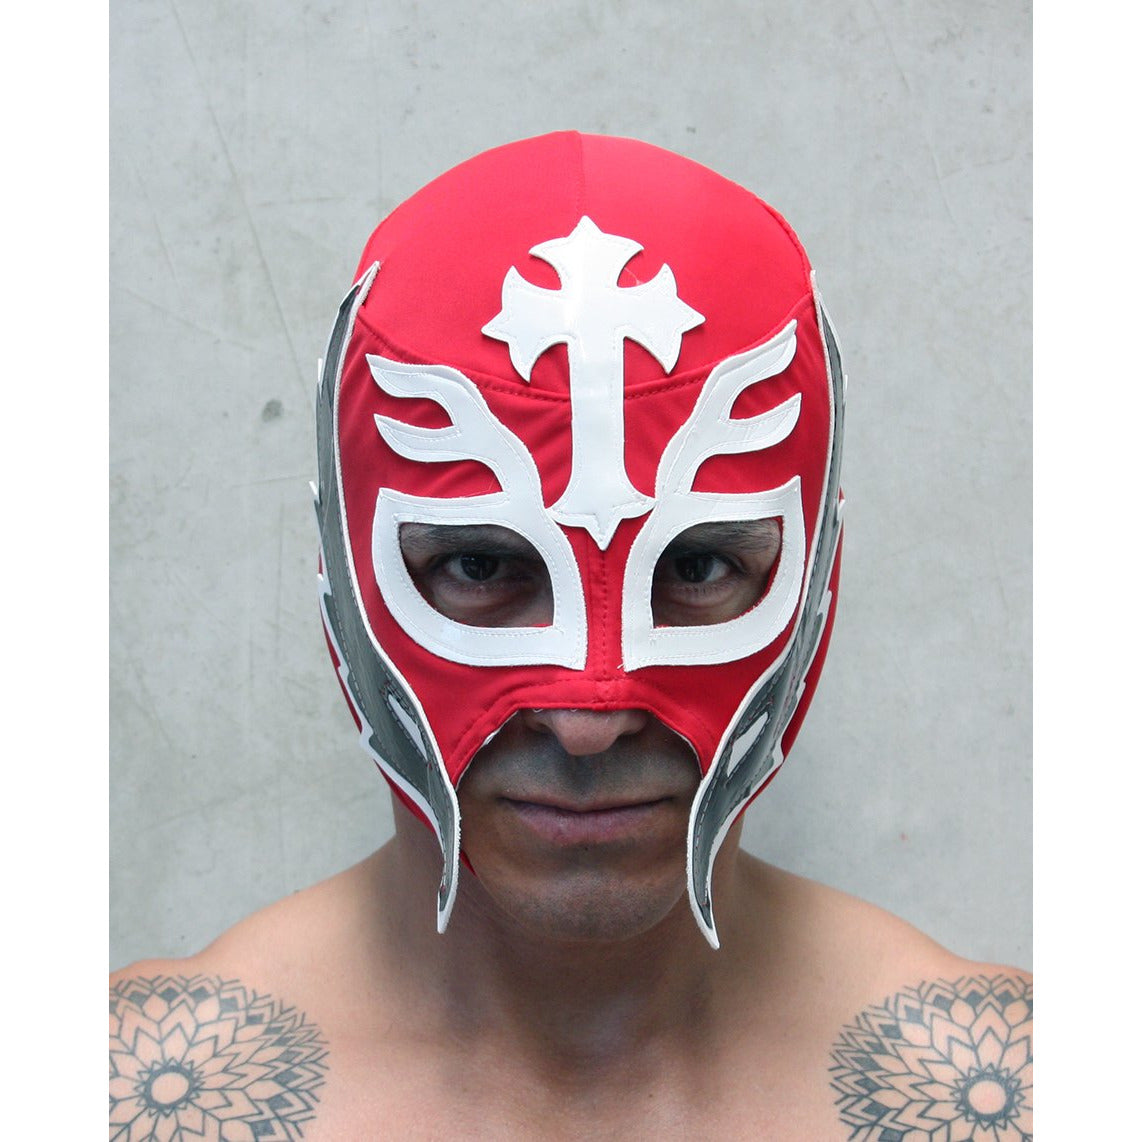 Rey Mysterio 22 Mask - Mexican Wrestling Masks - Lucha Libre Mask